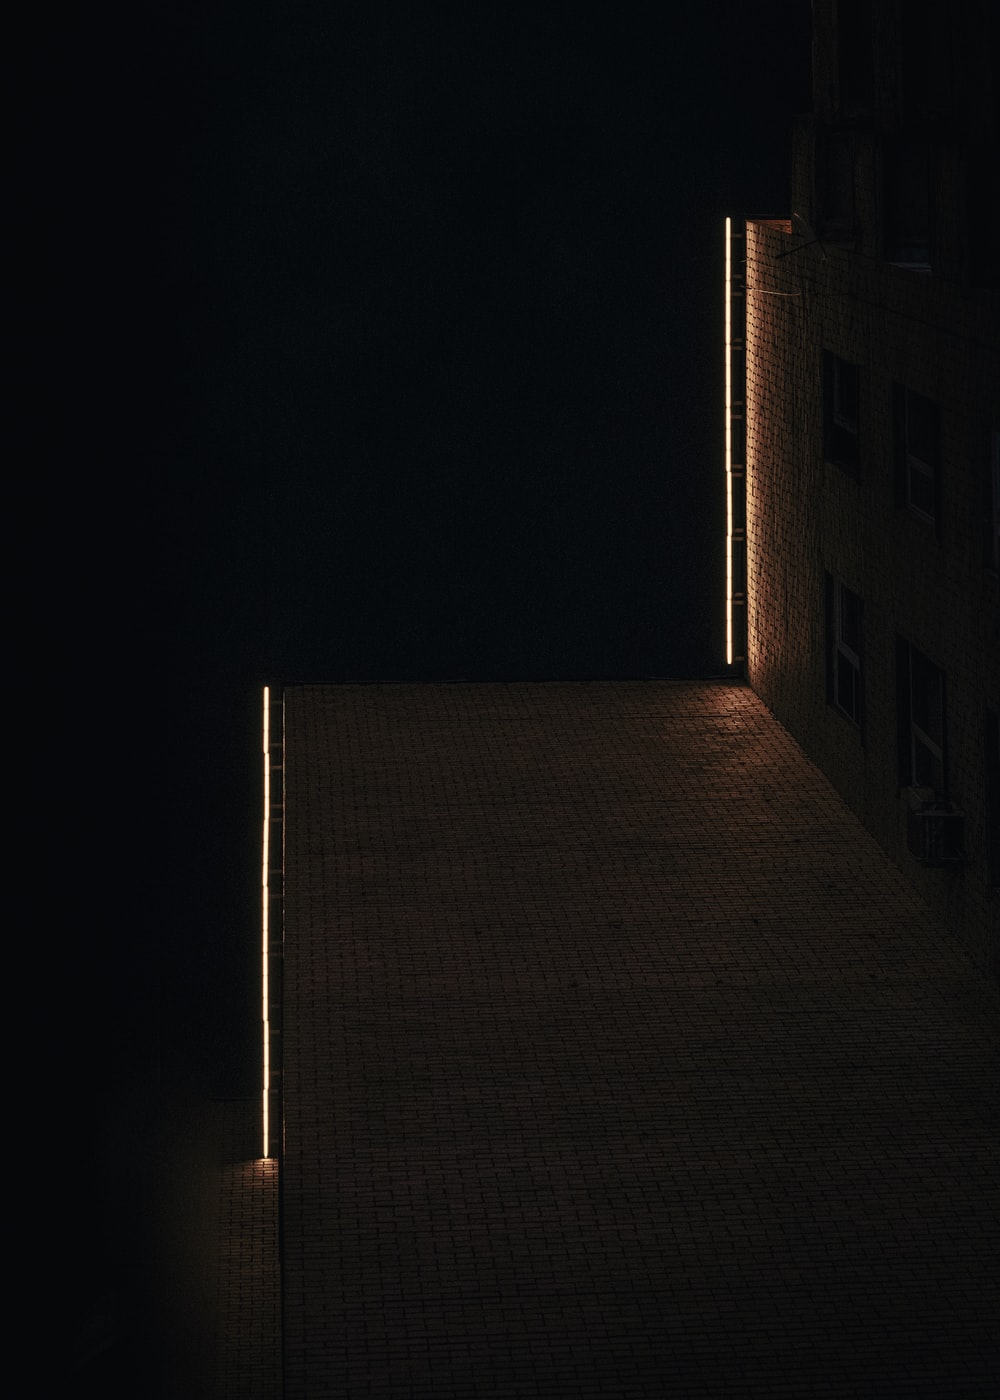 brown brick building during night time